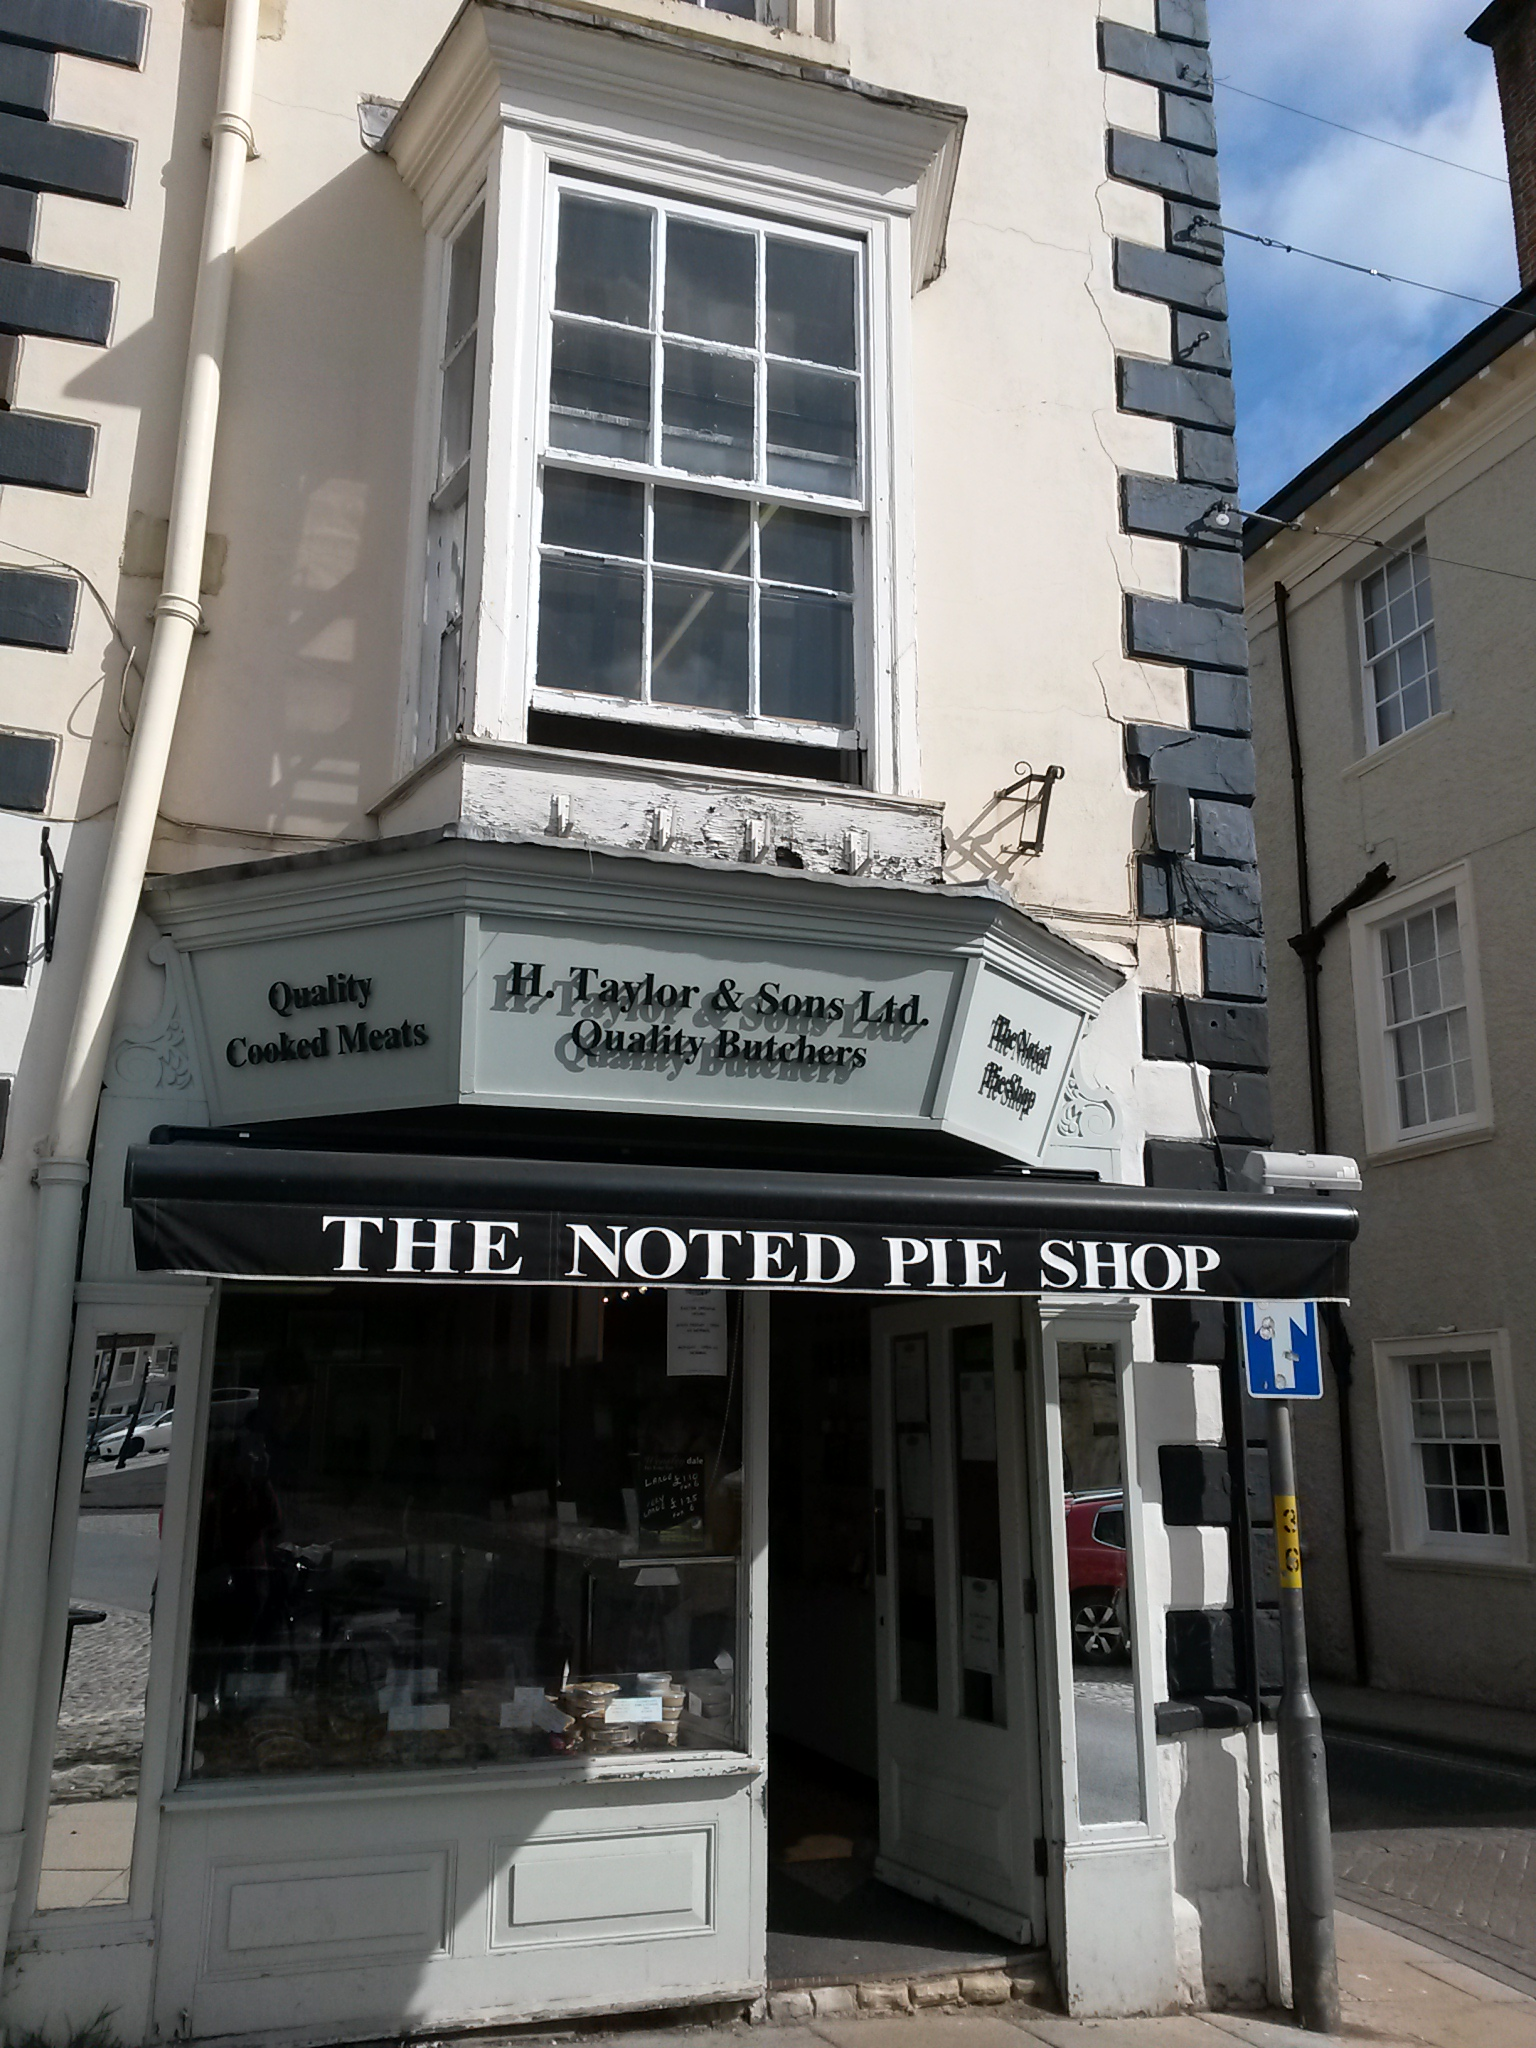 Try the pies!